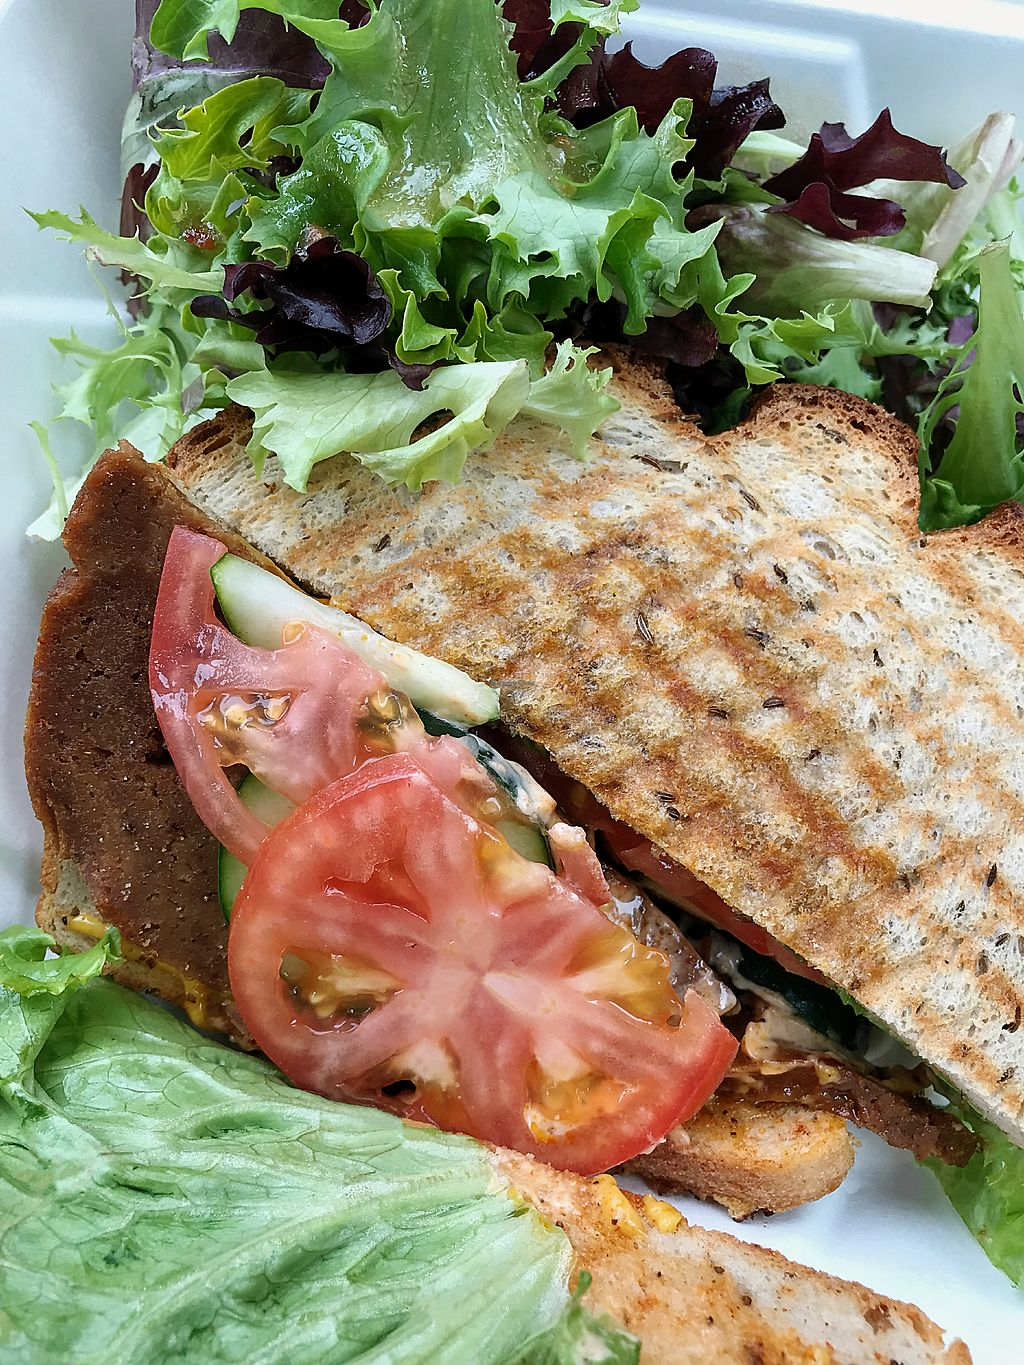 """Photo of Strong Hearts Cafe  by <a href=""""/members/profile/Dimanta"""">Dimanta</a> <br/>Seitan Sandwich was 3/5 <br/> March 14, 2018  - <a href='/contact/abuse/image/14197/370353'>Report</a>"""